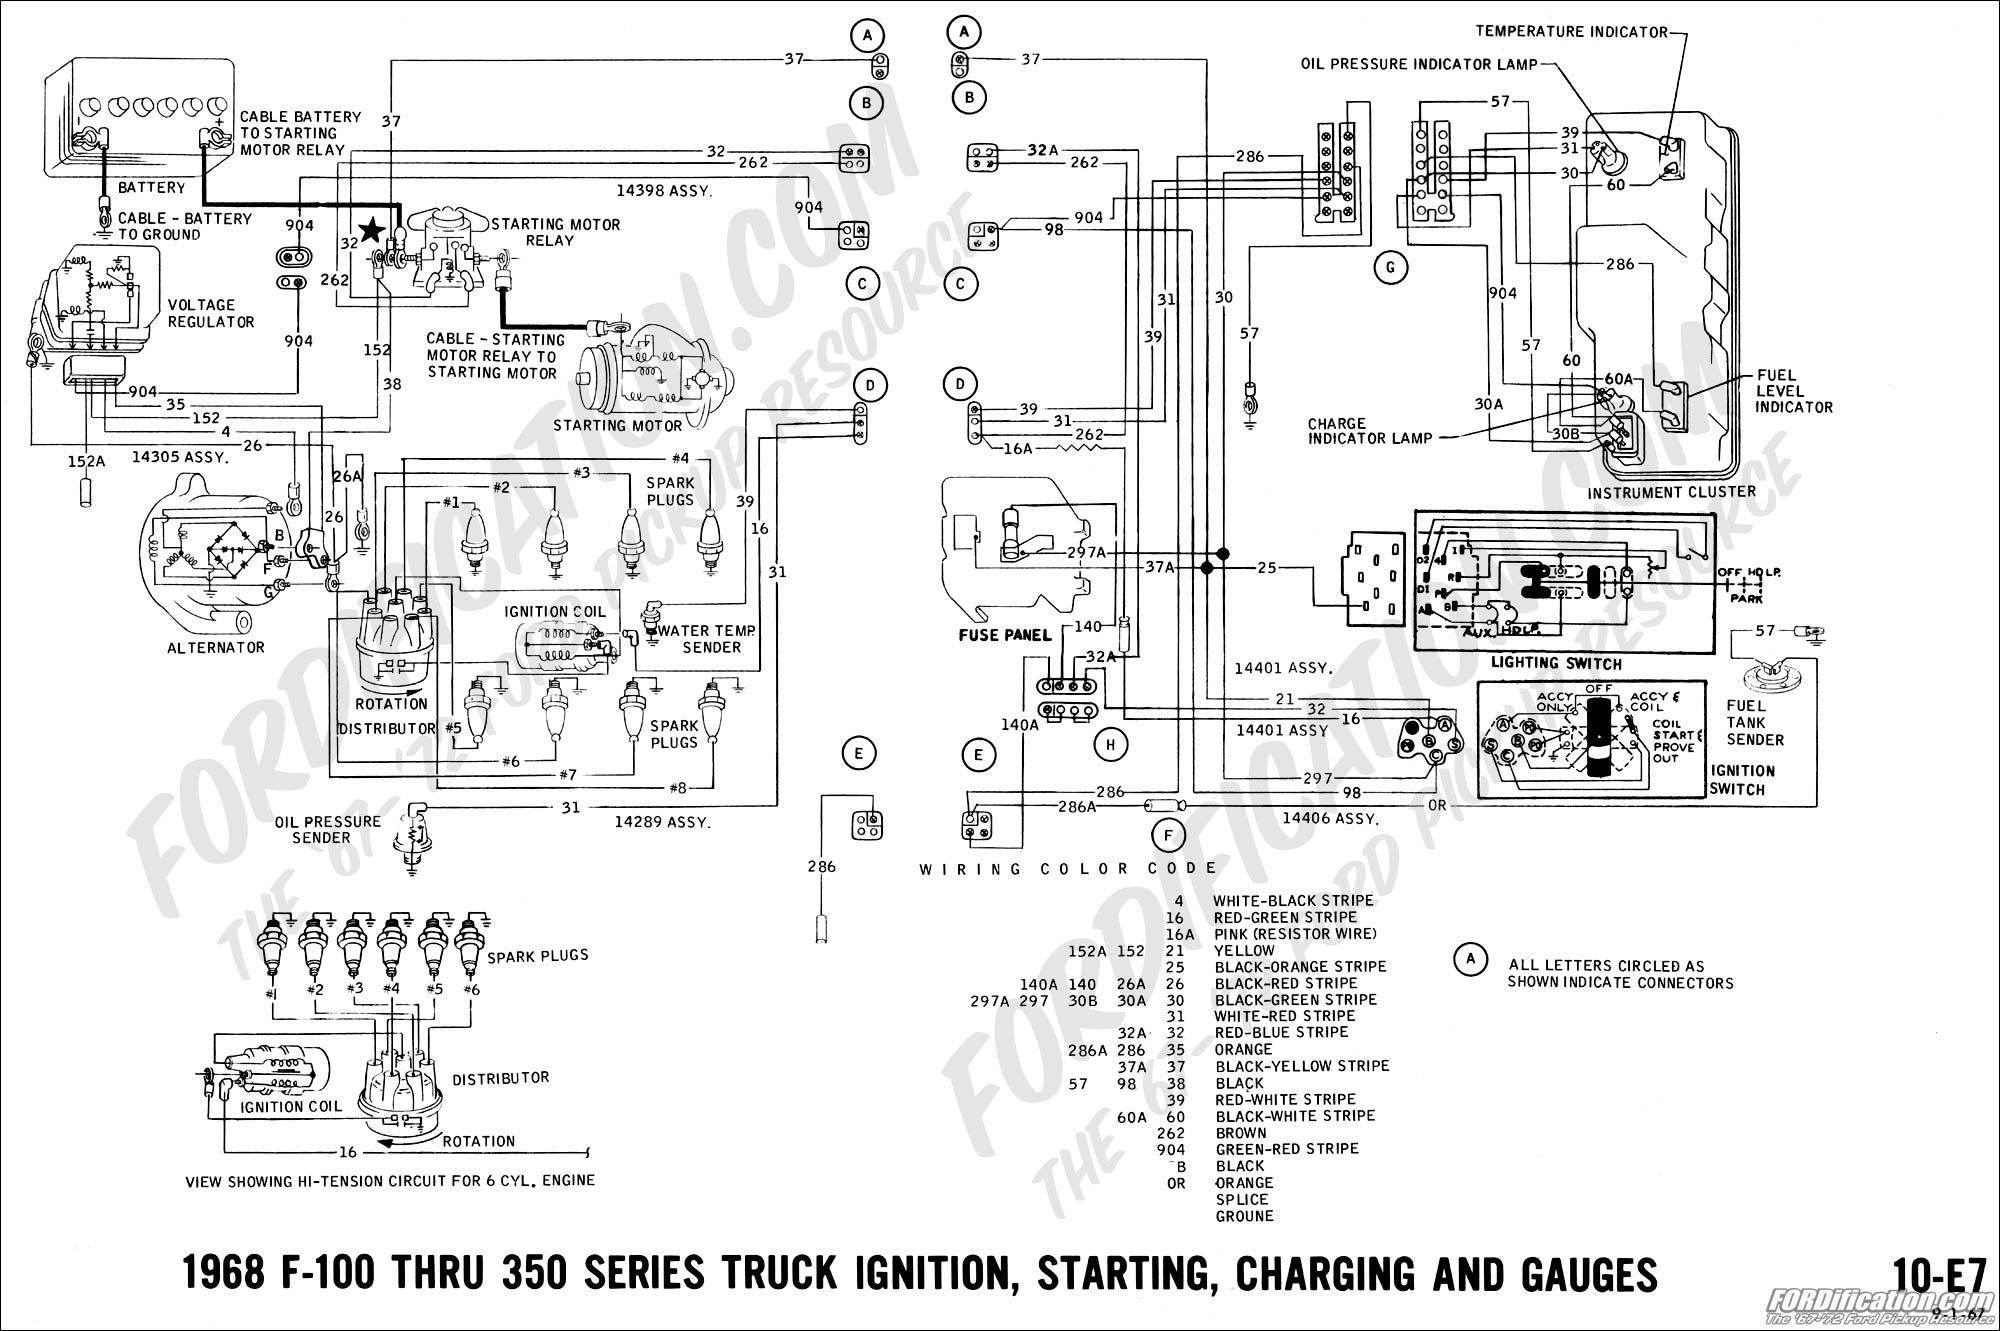 ford truck technical drawings and schematics - section h - wiring, Wiring diagram